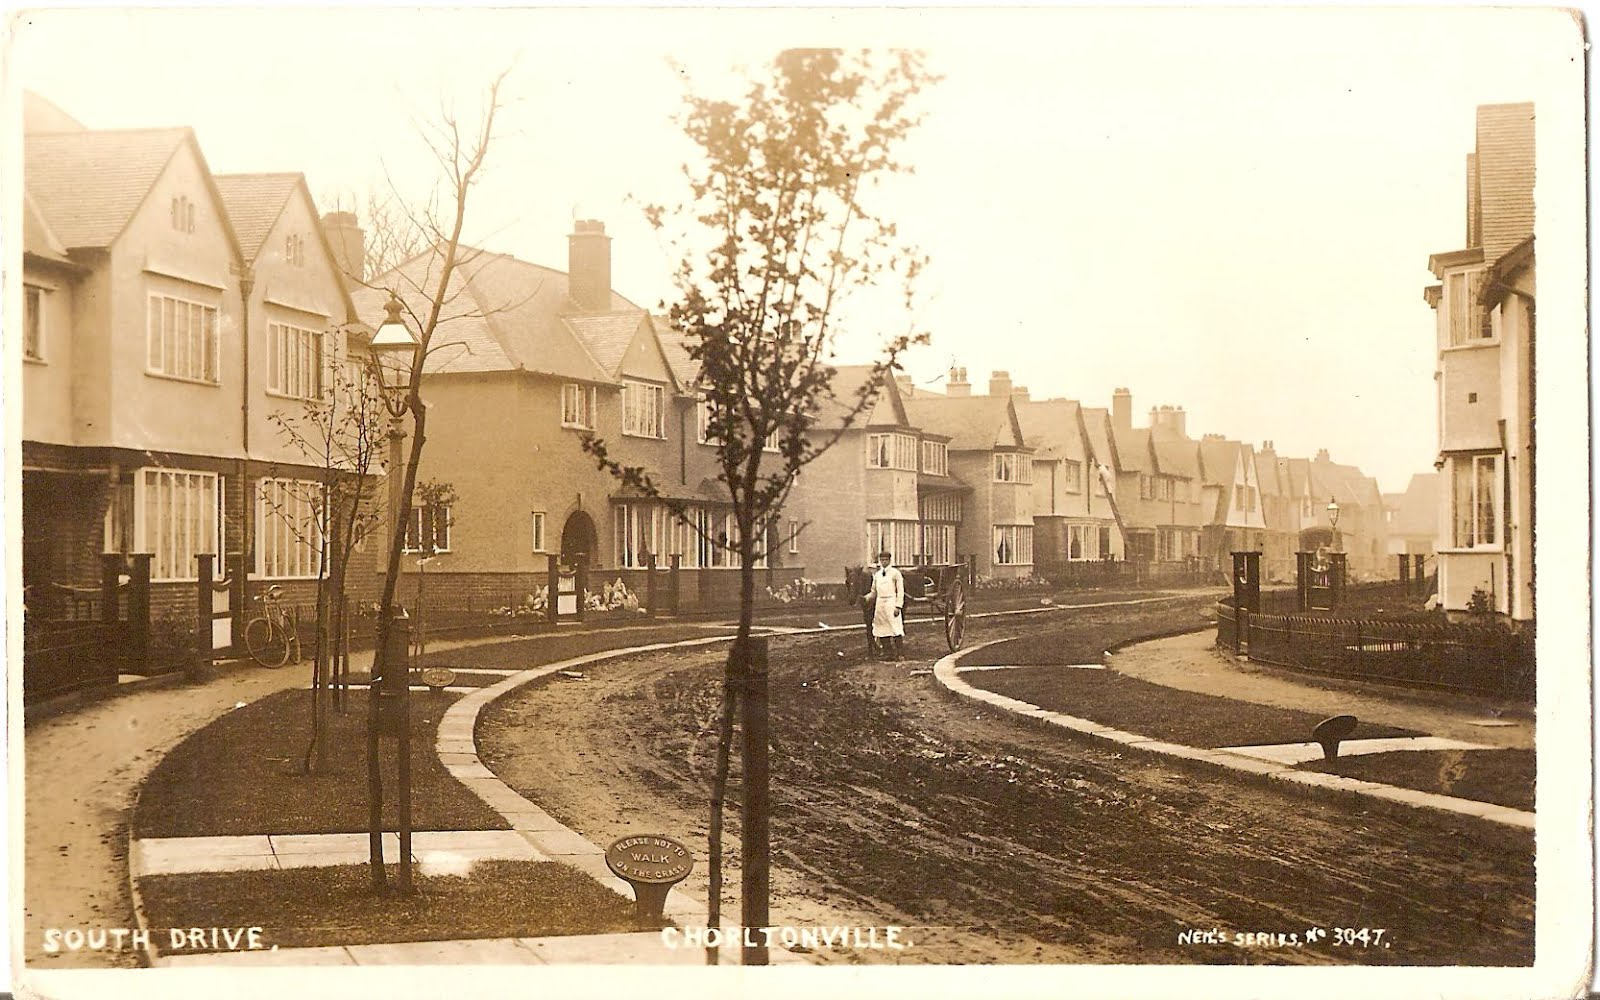 Another picture of Chorltonville, South Drive and a milkman